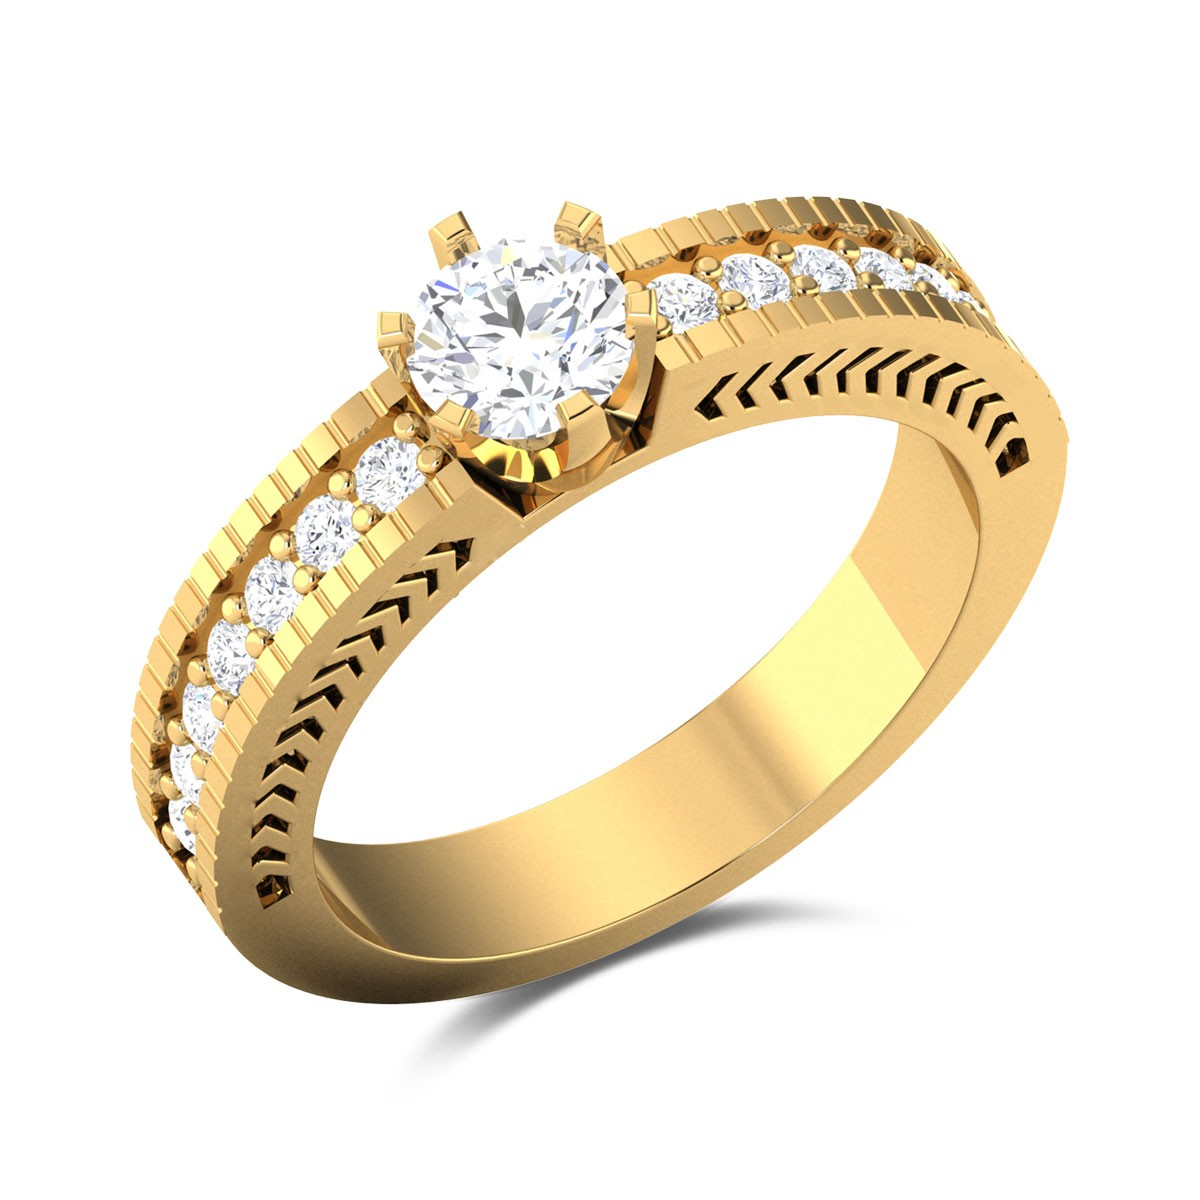 Charuhas 6 Prong Solitaire Ring